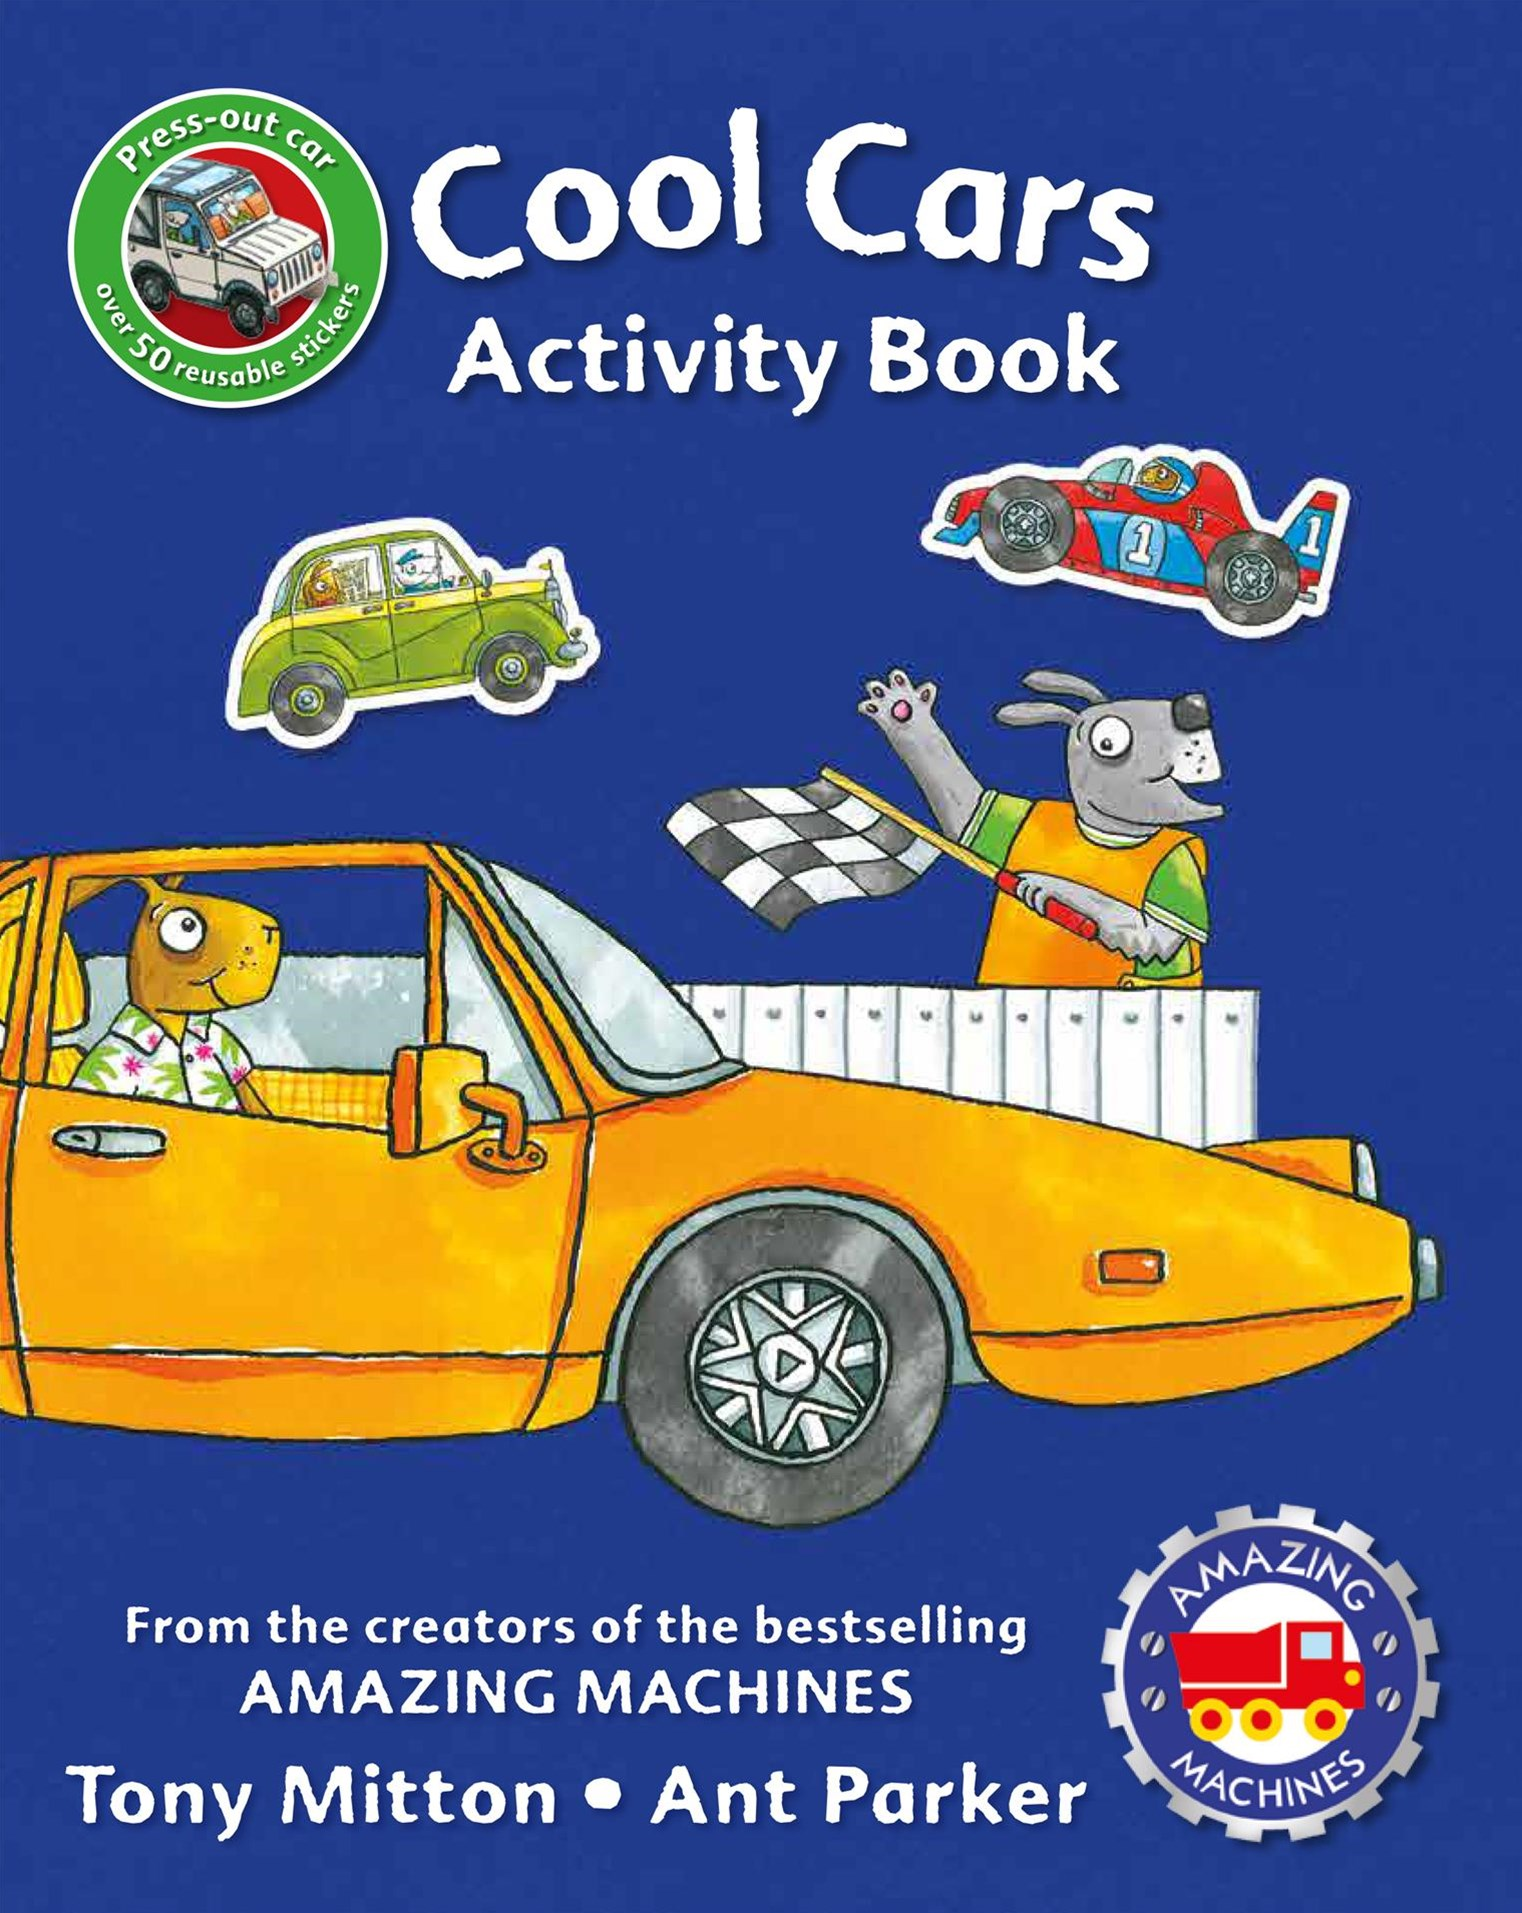 My Amazing Machines Cool Cars Activity Book